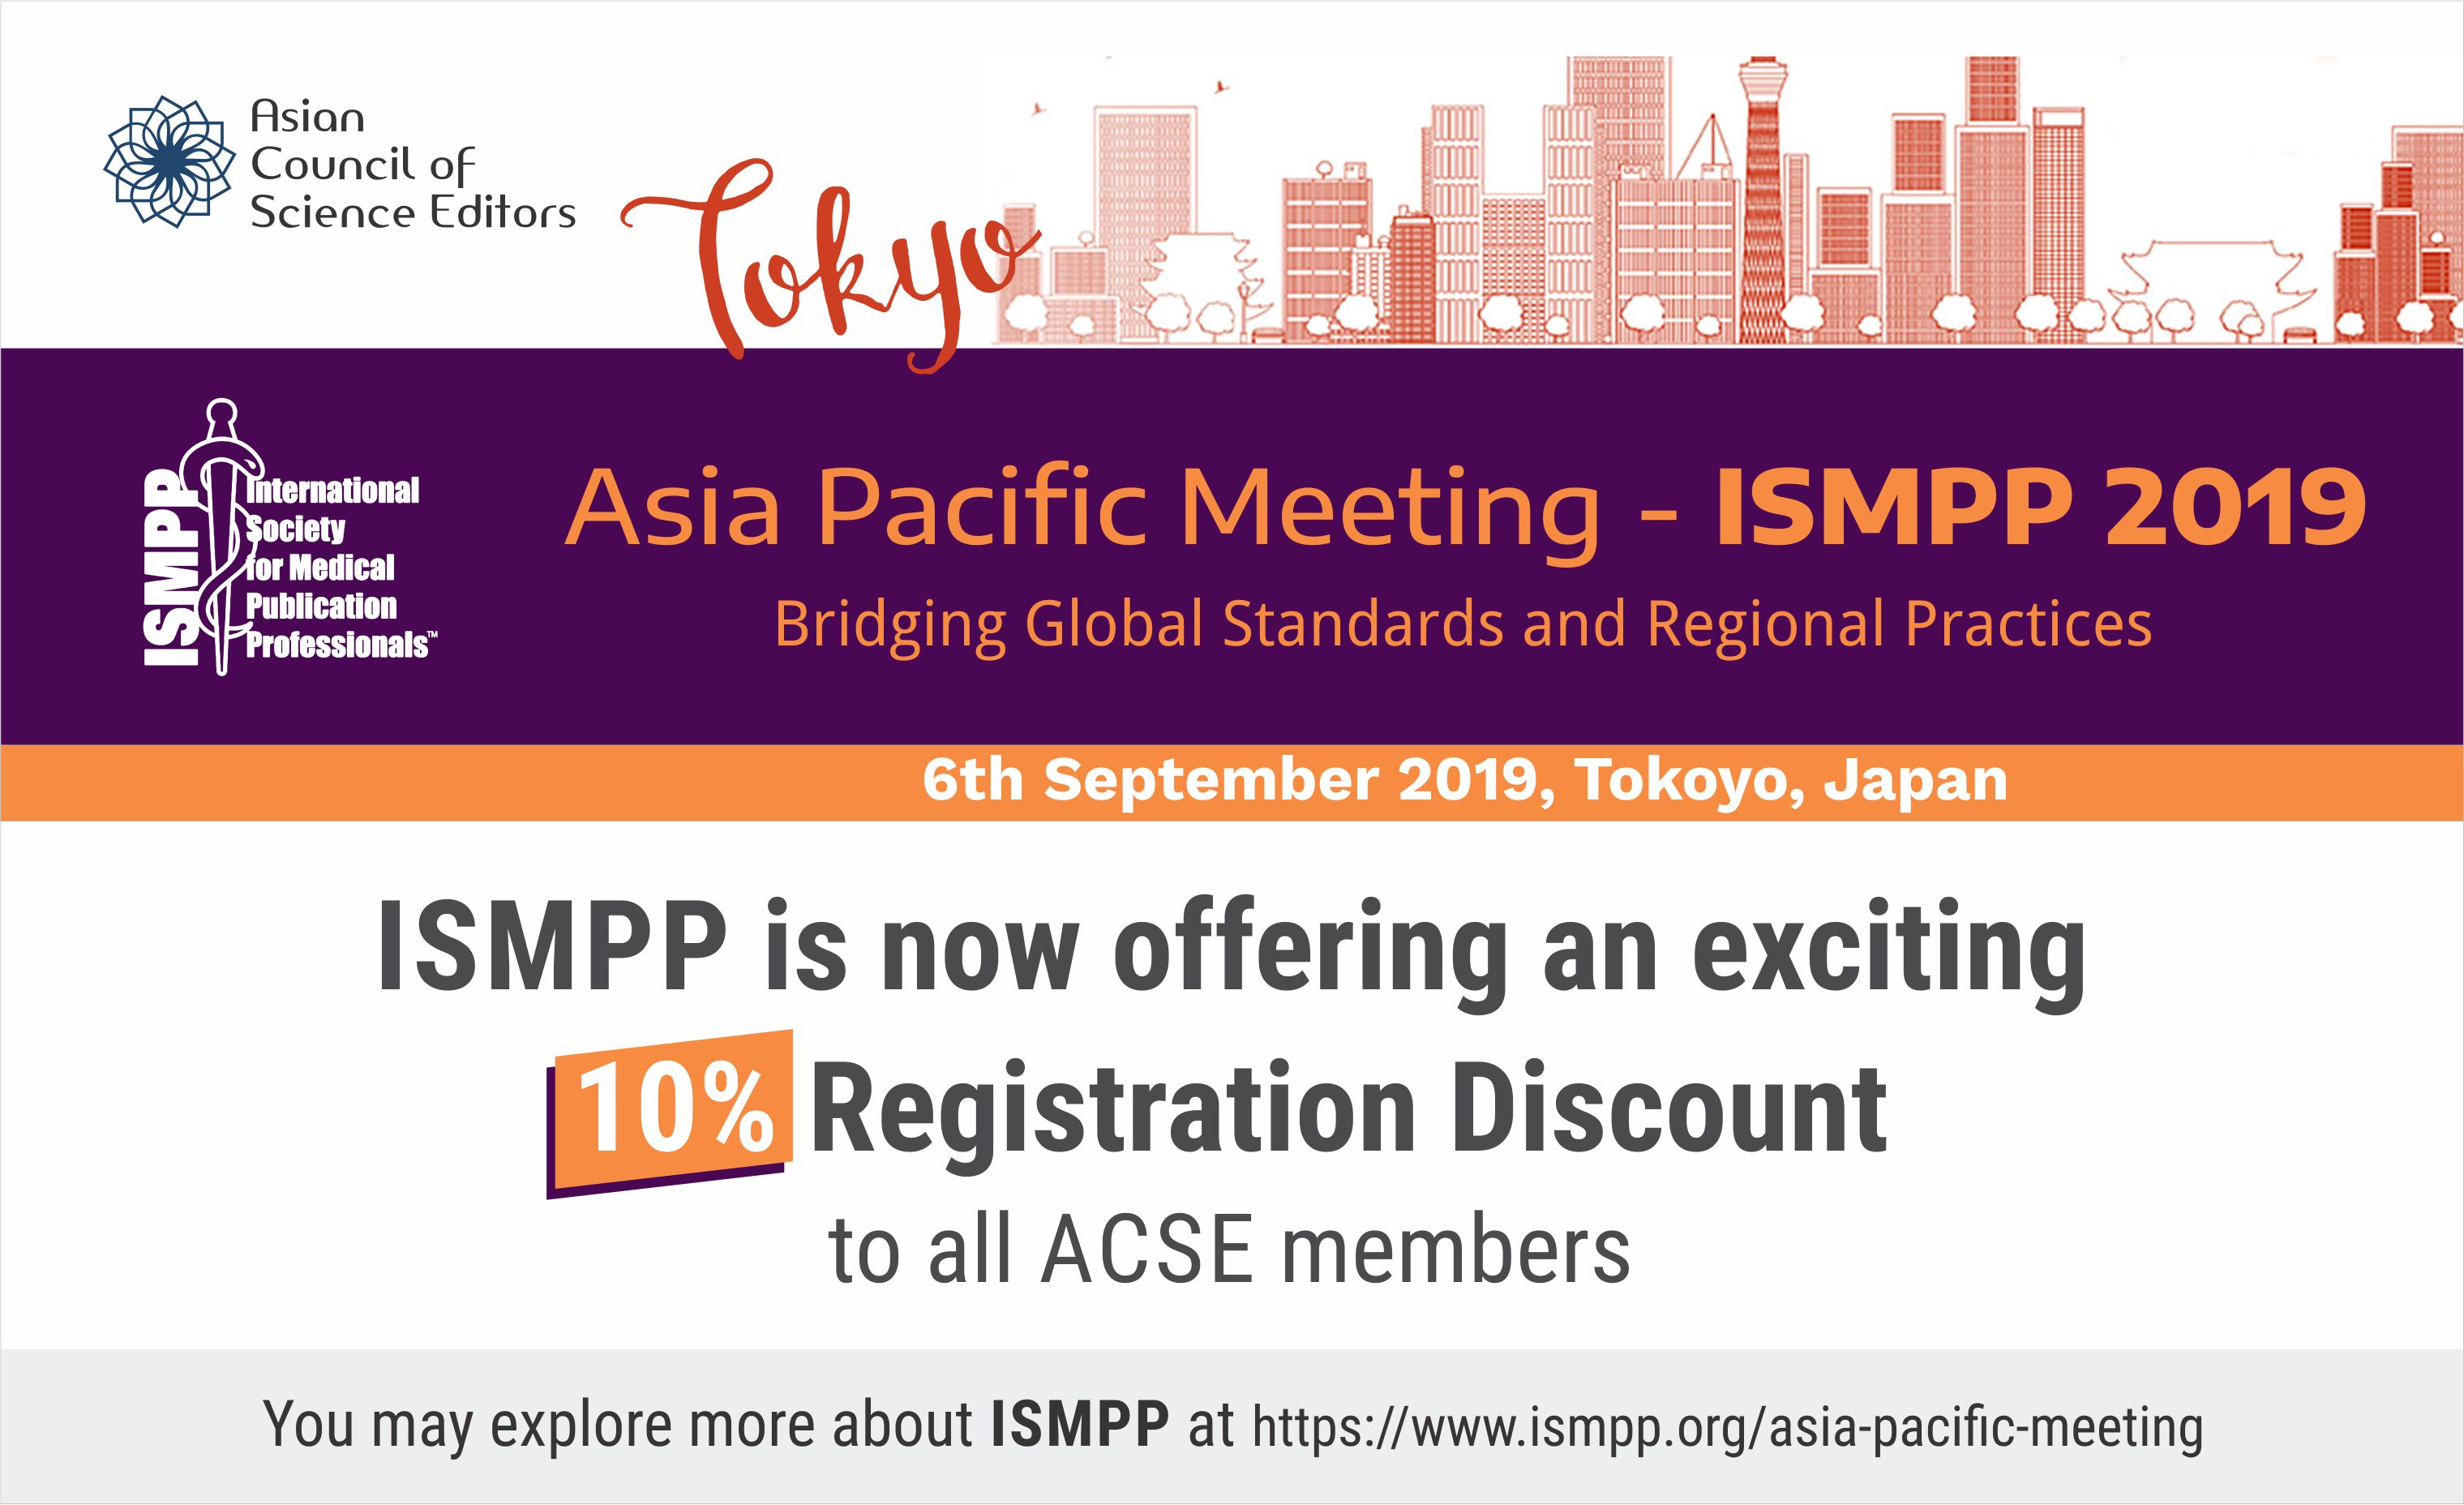 10% Discount for Asia Pacific Meeting of ISMPP